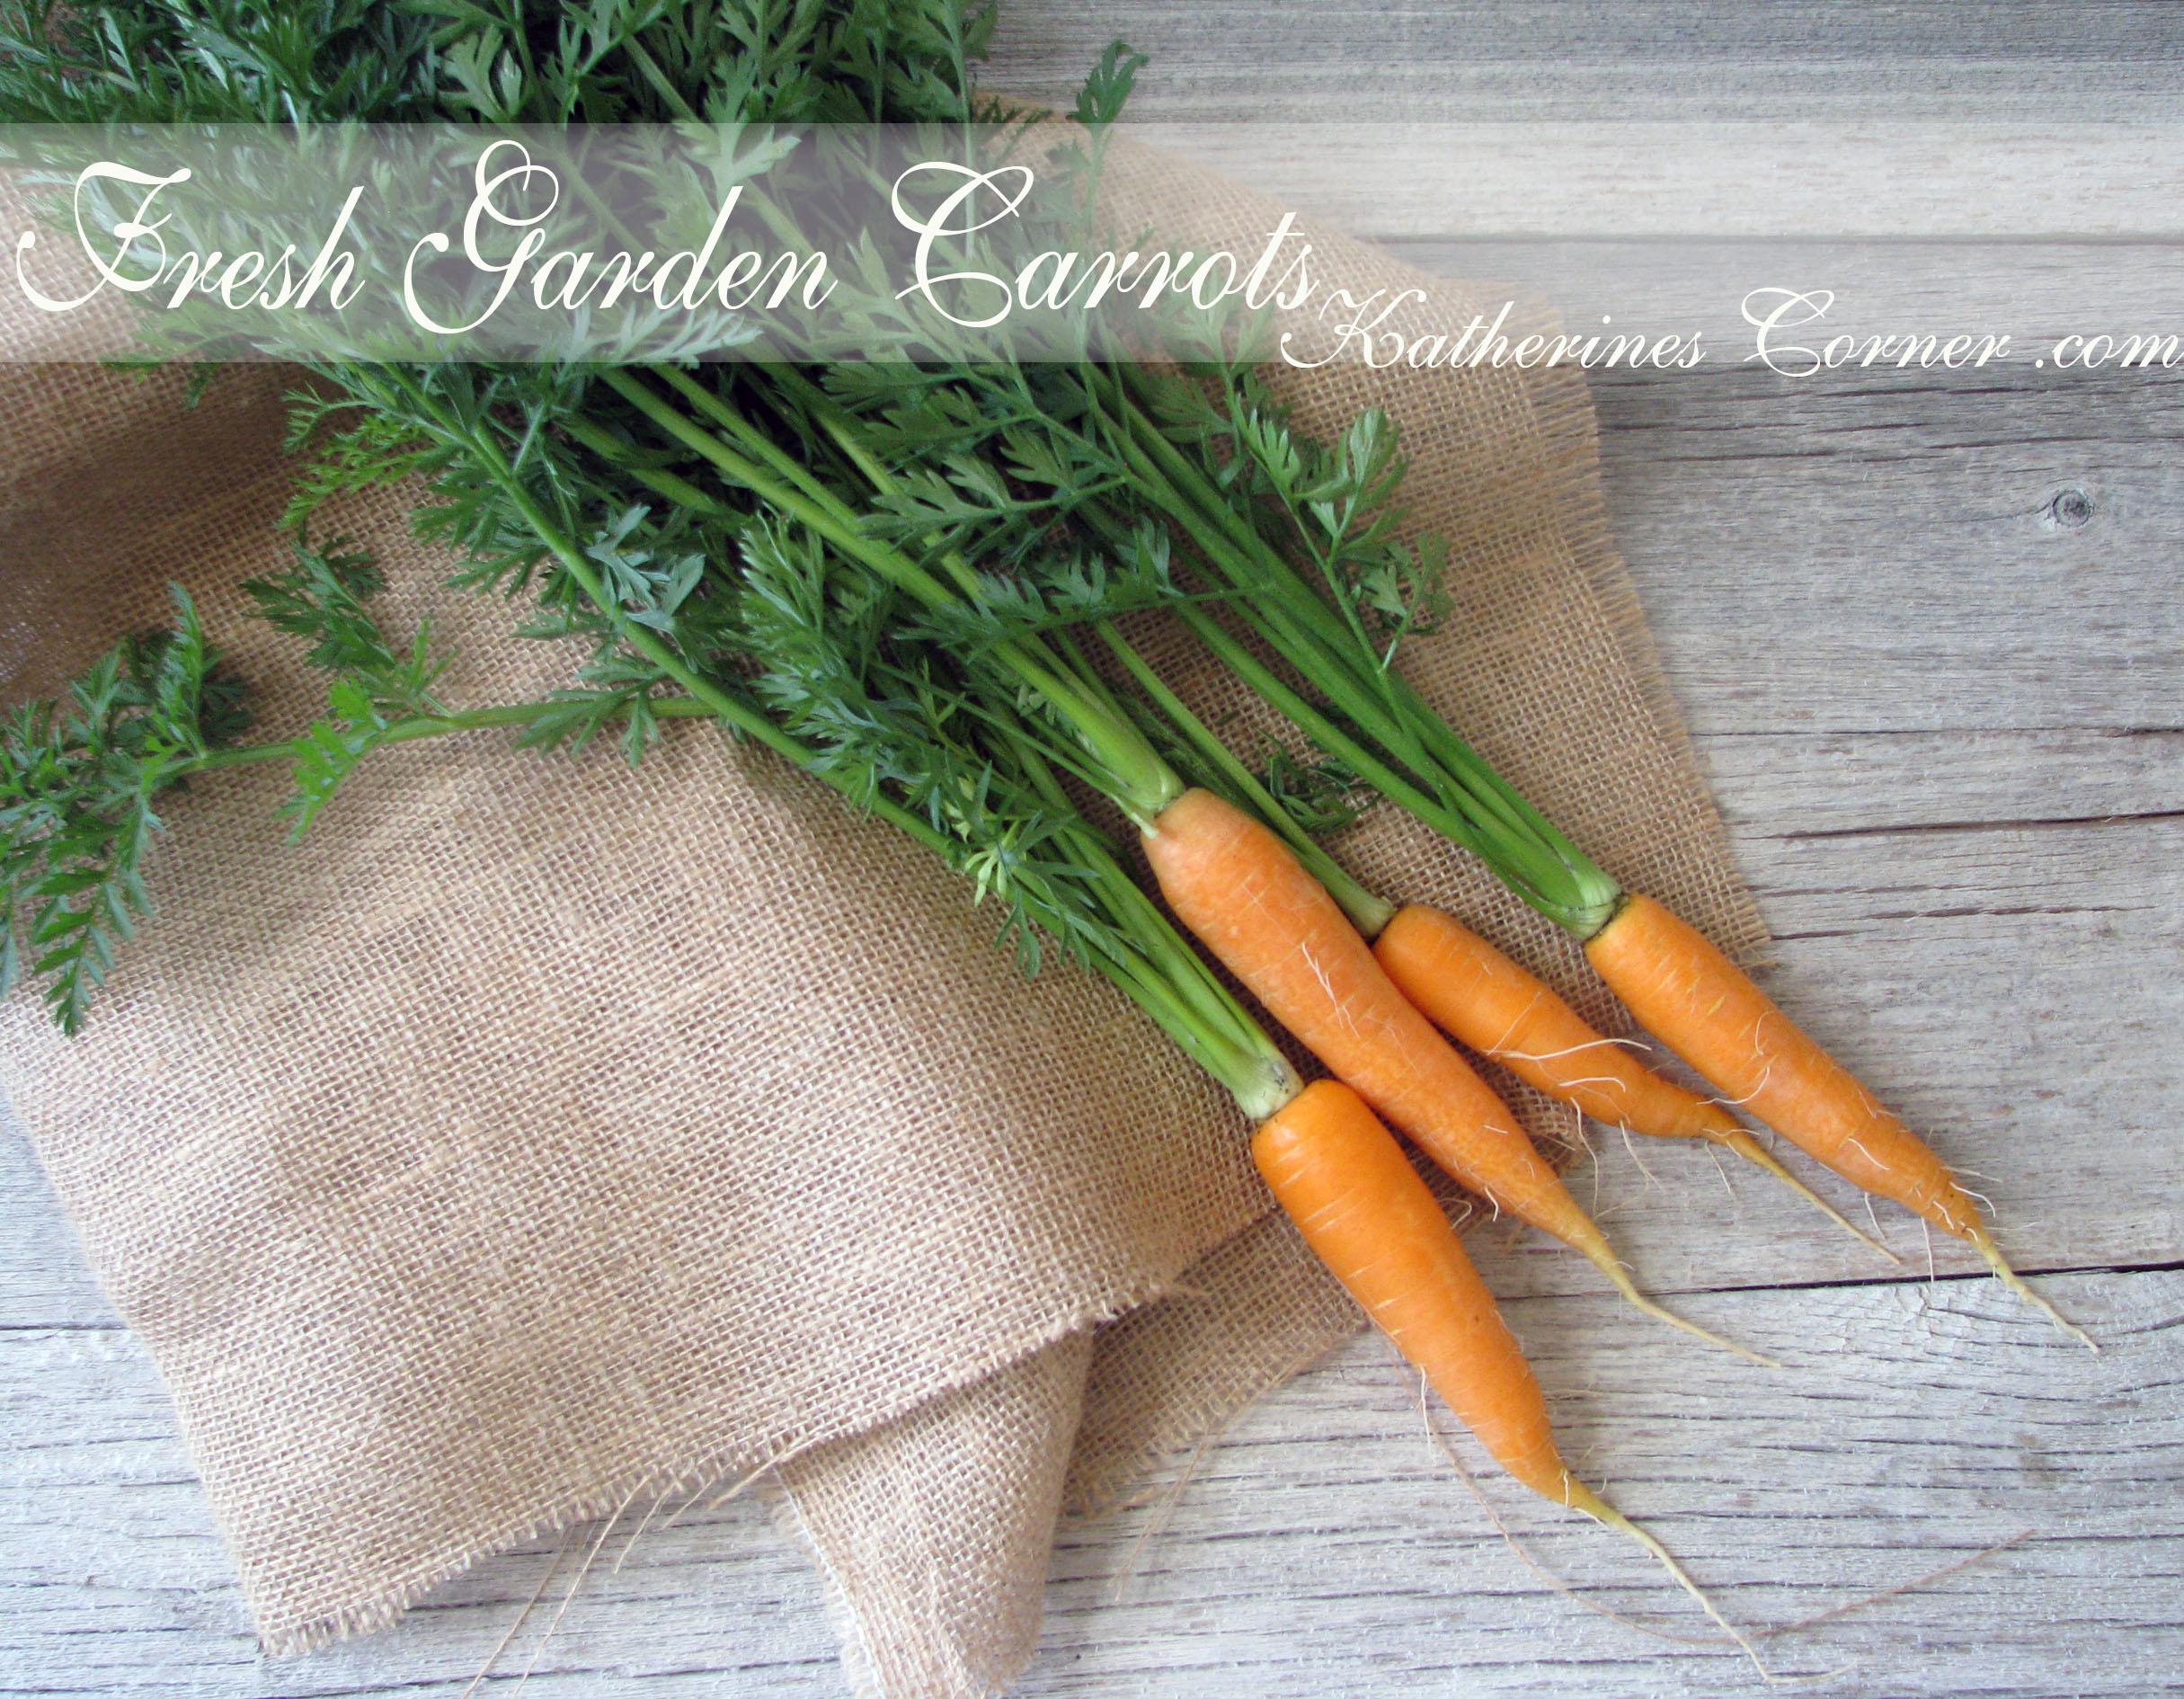 Carrots Are Not Just For Bunnies